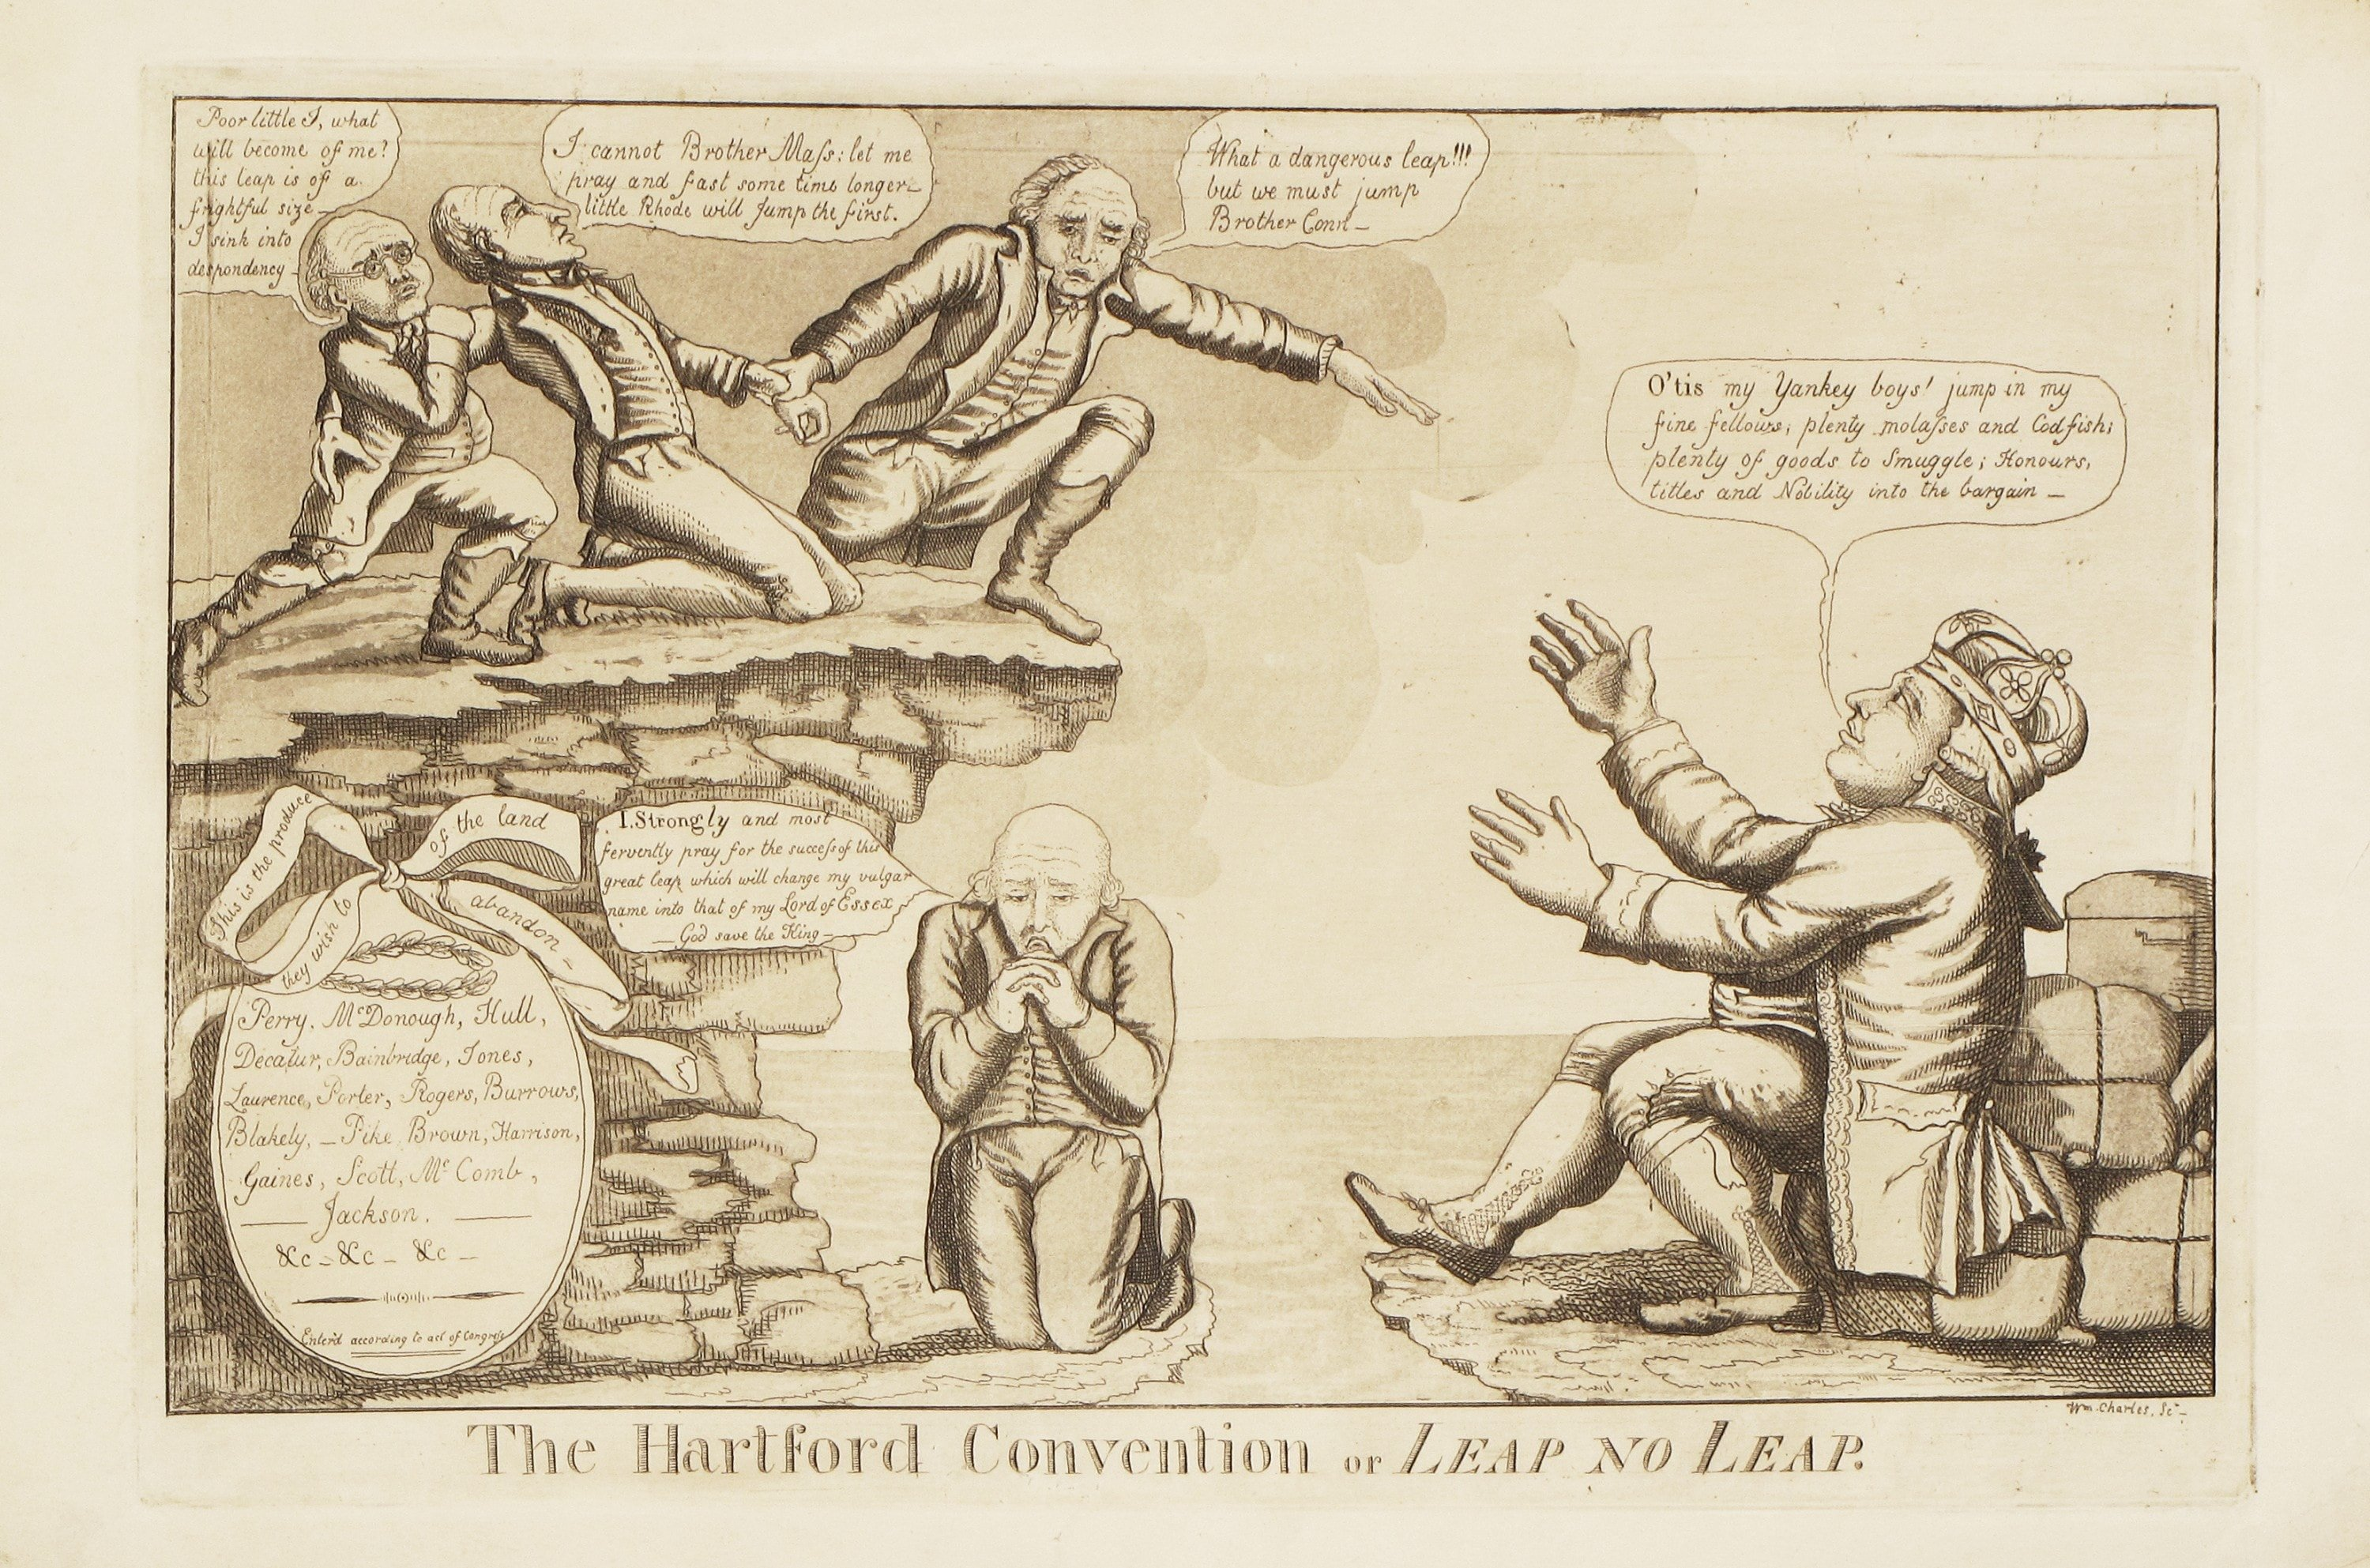 war of 1812 political caricature skewering new england secessionists